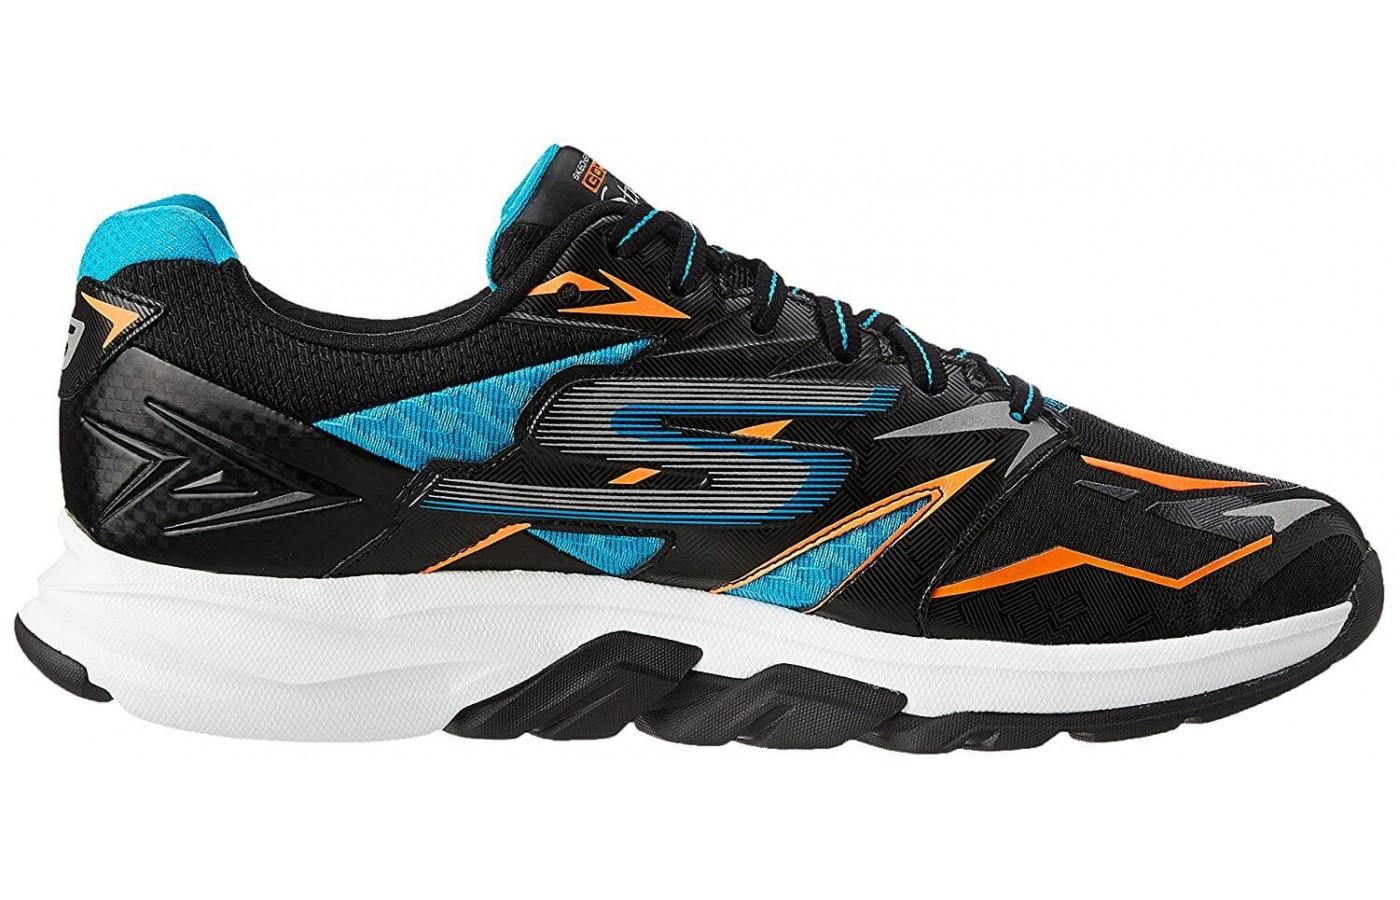 the Skechers GOrun Strada has a Layered Support Zone to stabilize the midfoot